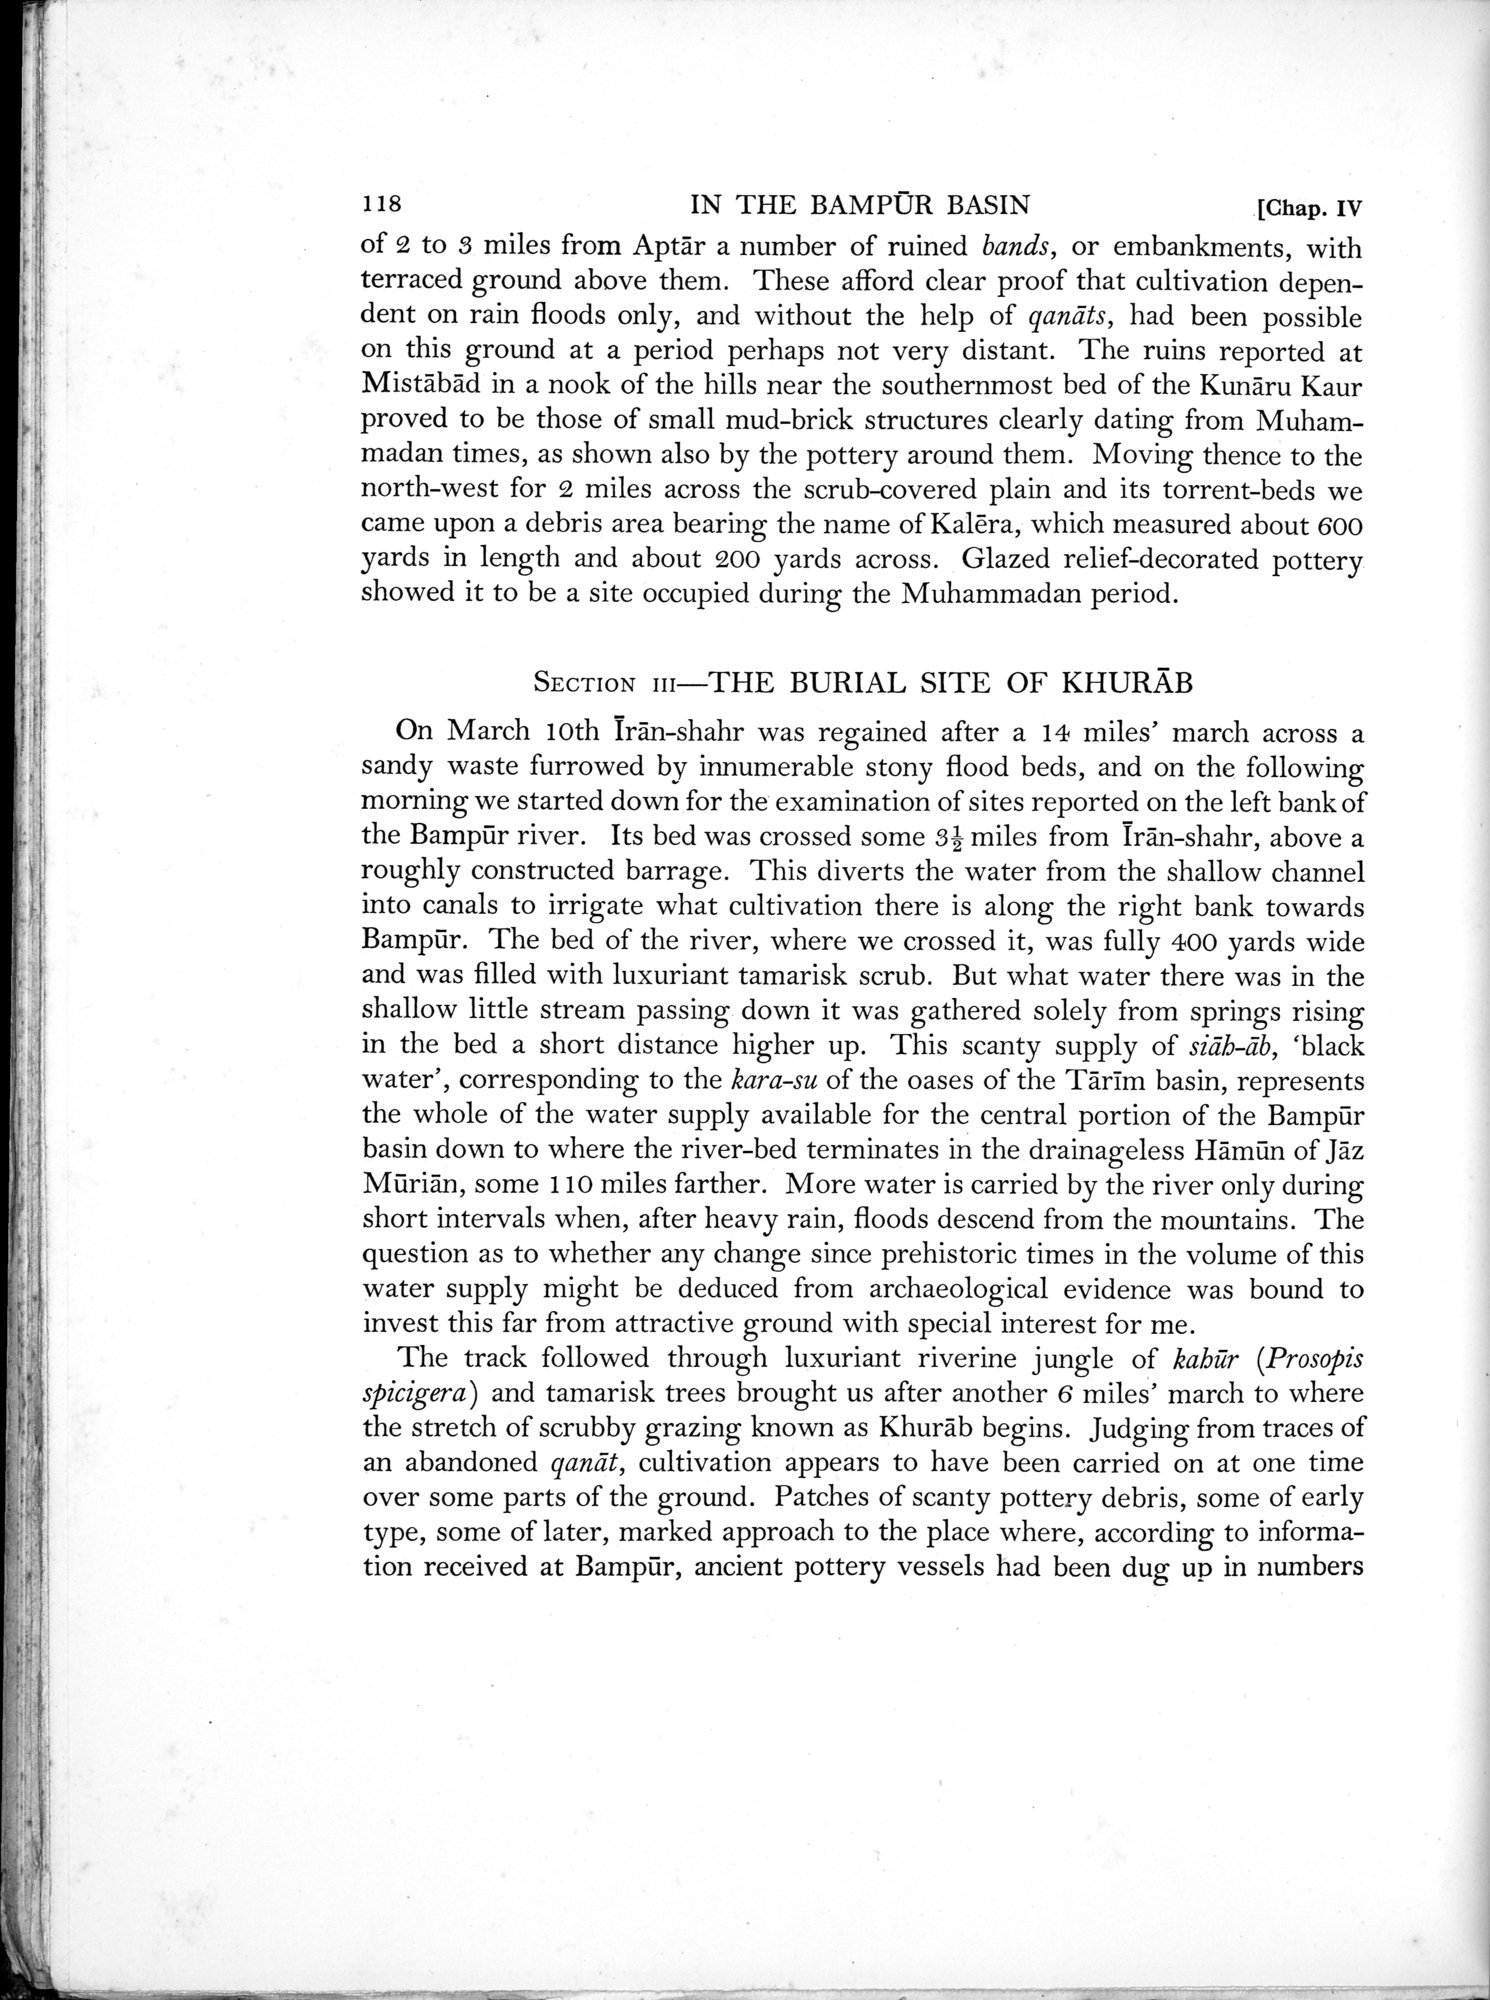 Archaeological Reconnaissances in North-Western India and South-Eastern Īrān : vol.1 / Page 170 (Grayscale High Resolution Image)